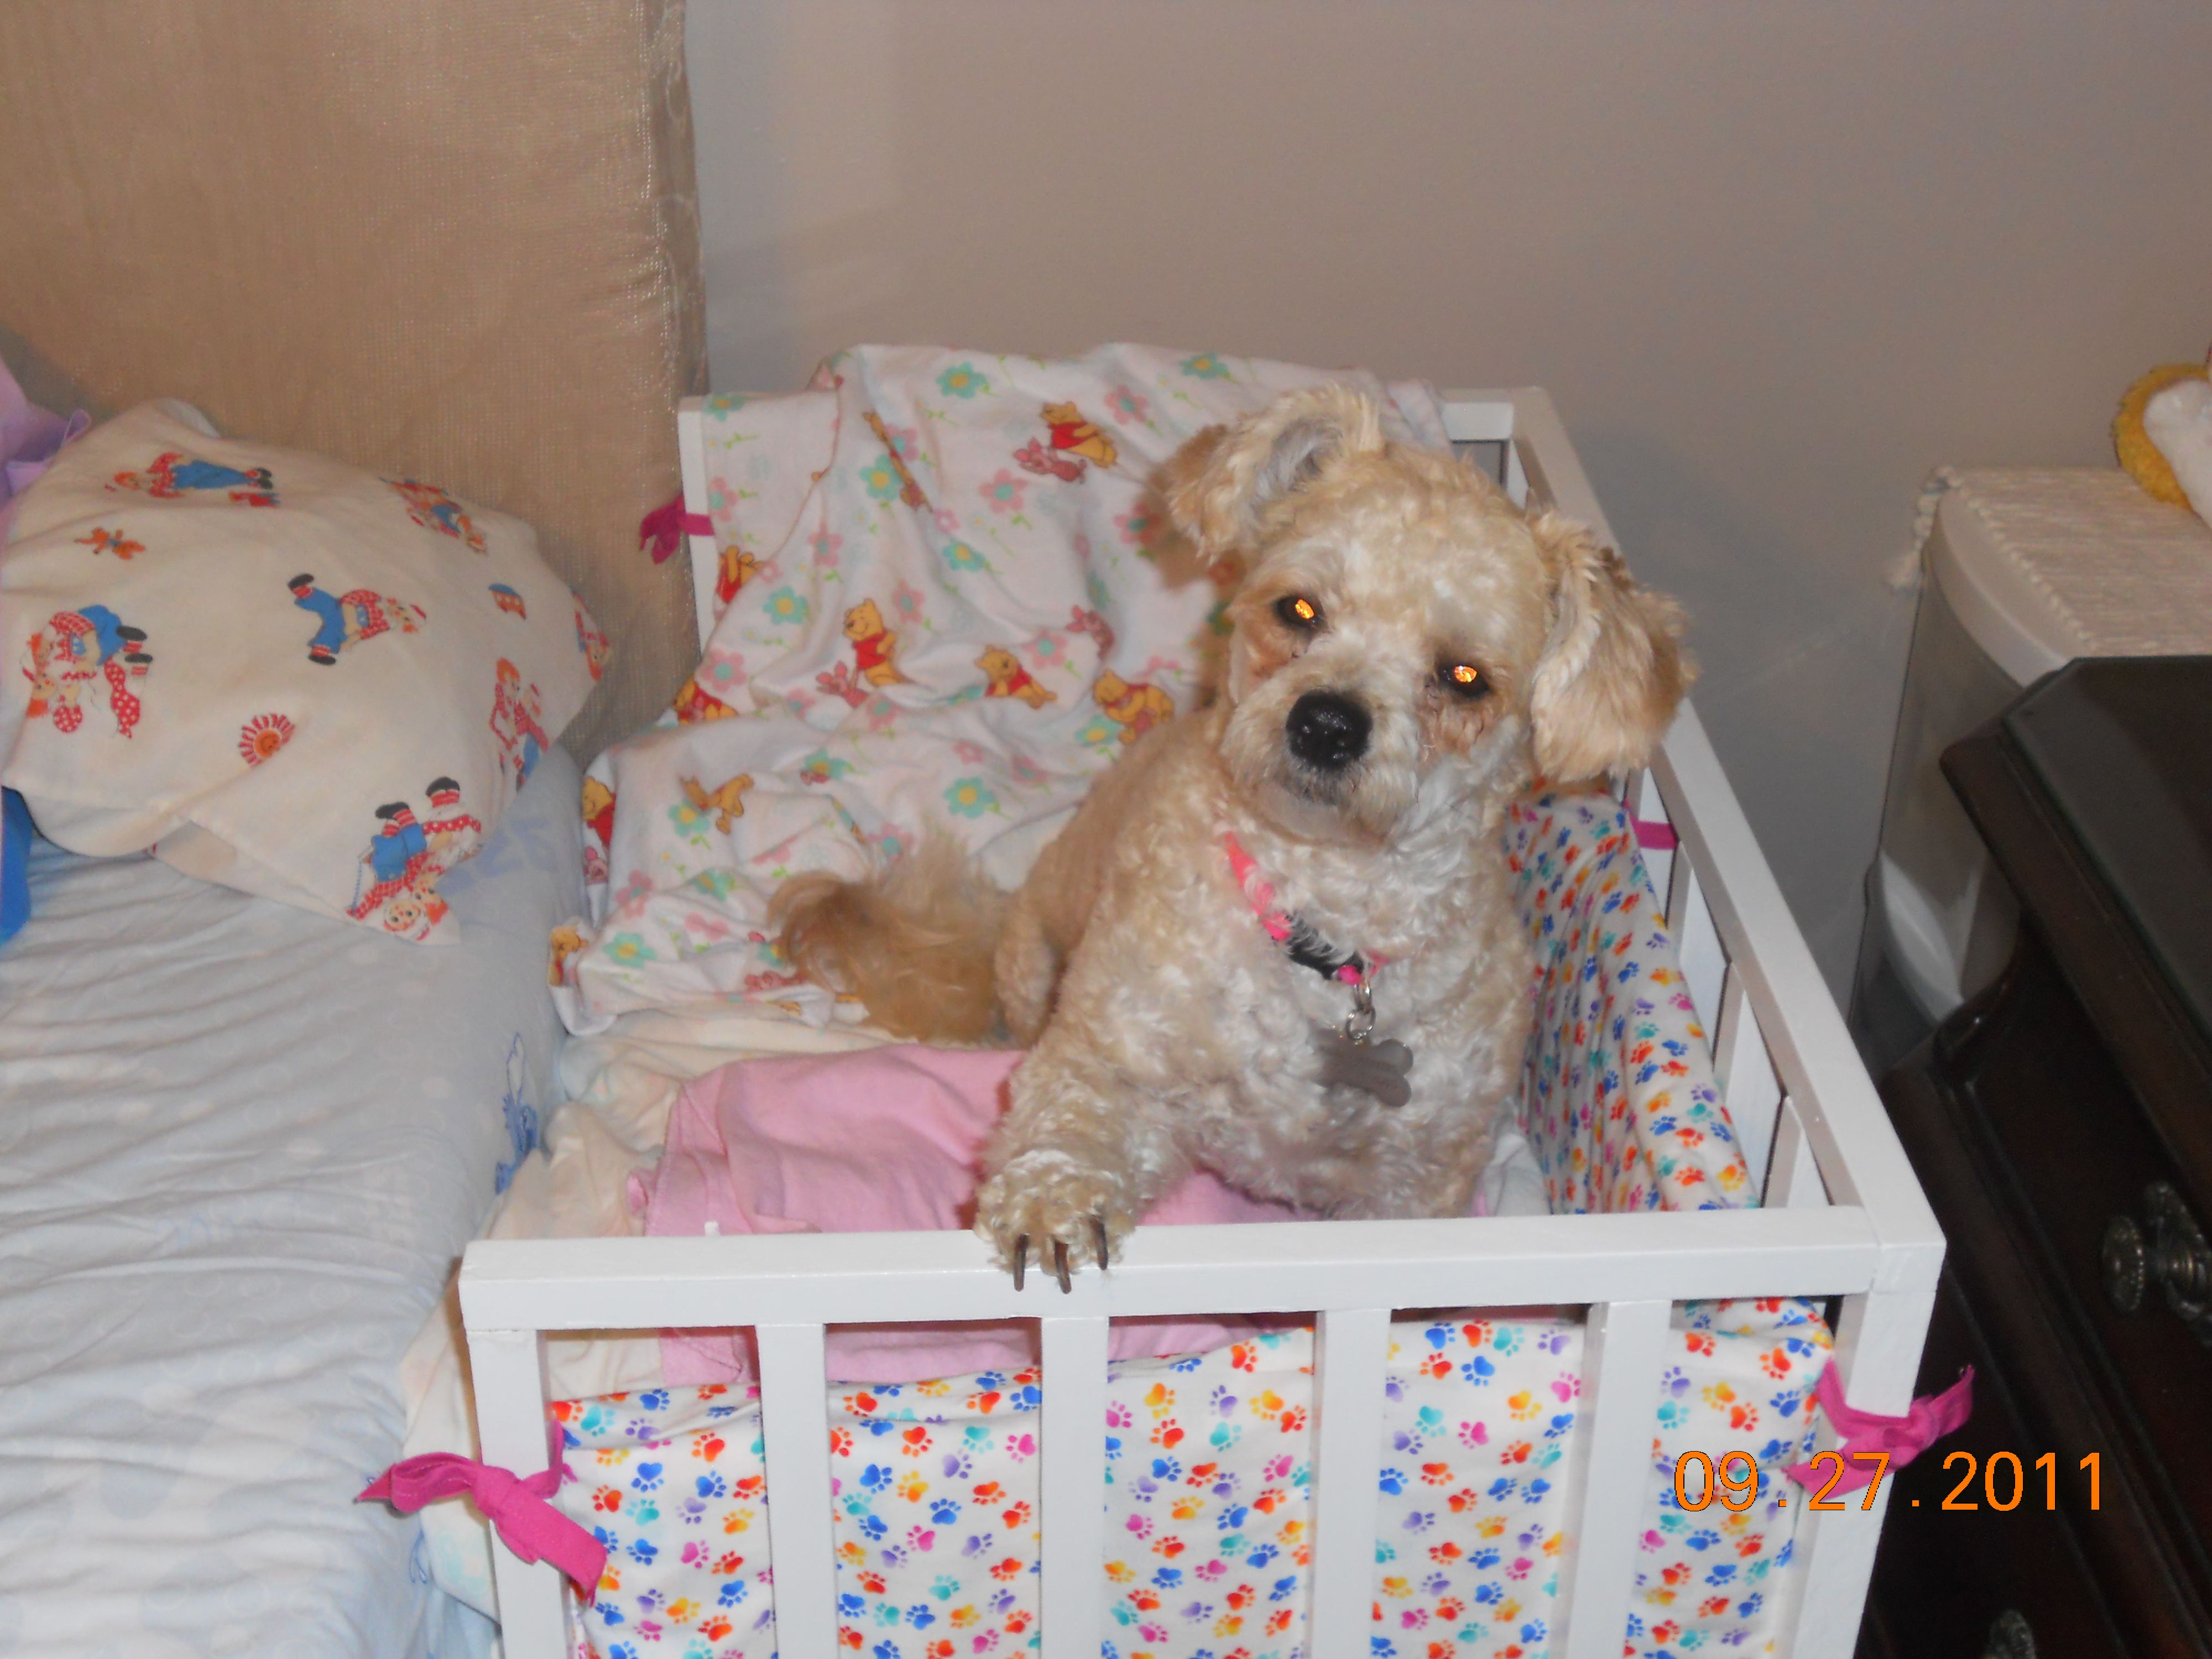 ba5309f0bbb444c802a03f014620e7fa - How Do I Get My Puppy To Sleep In His Bed